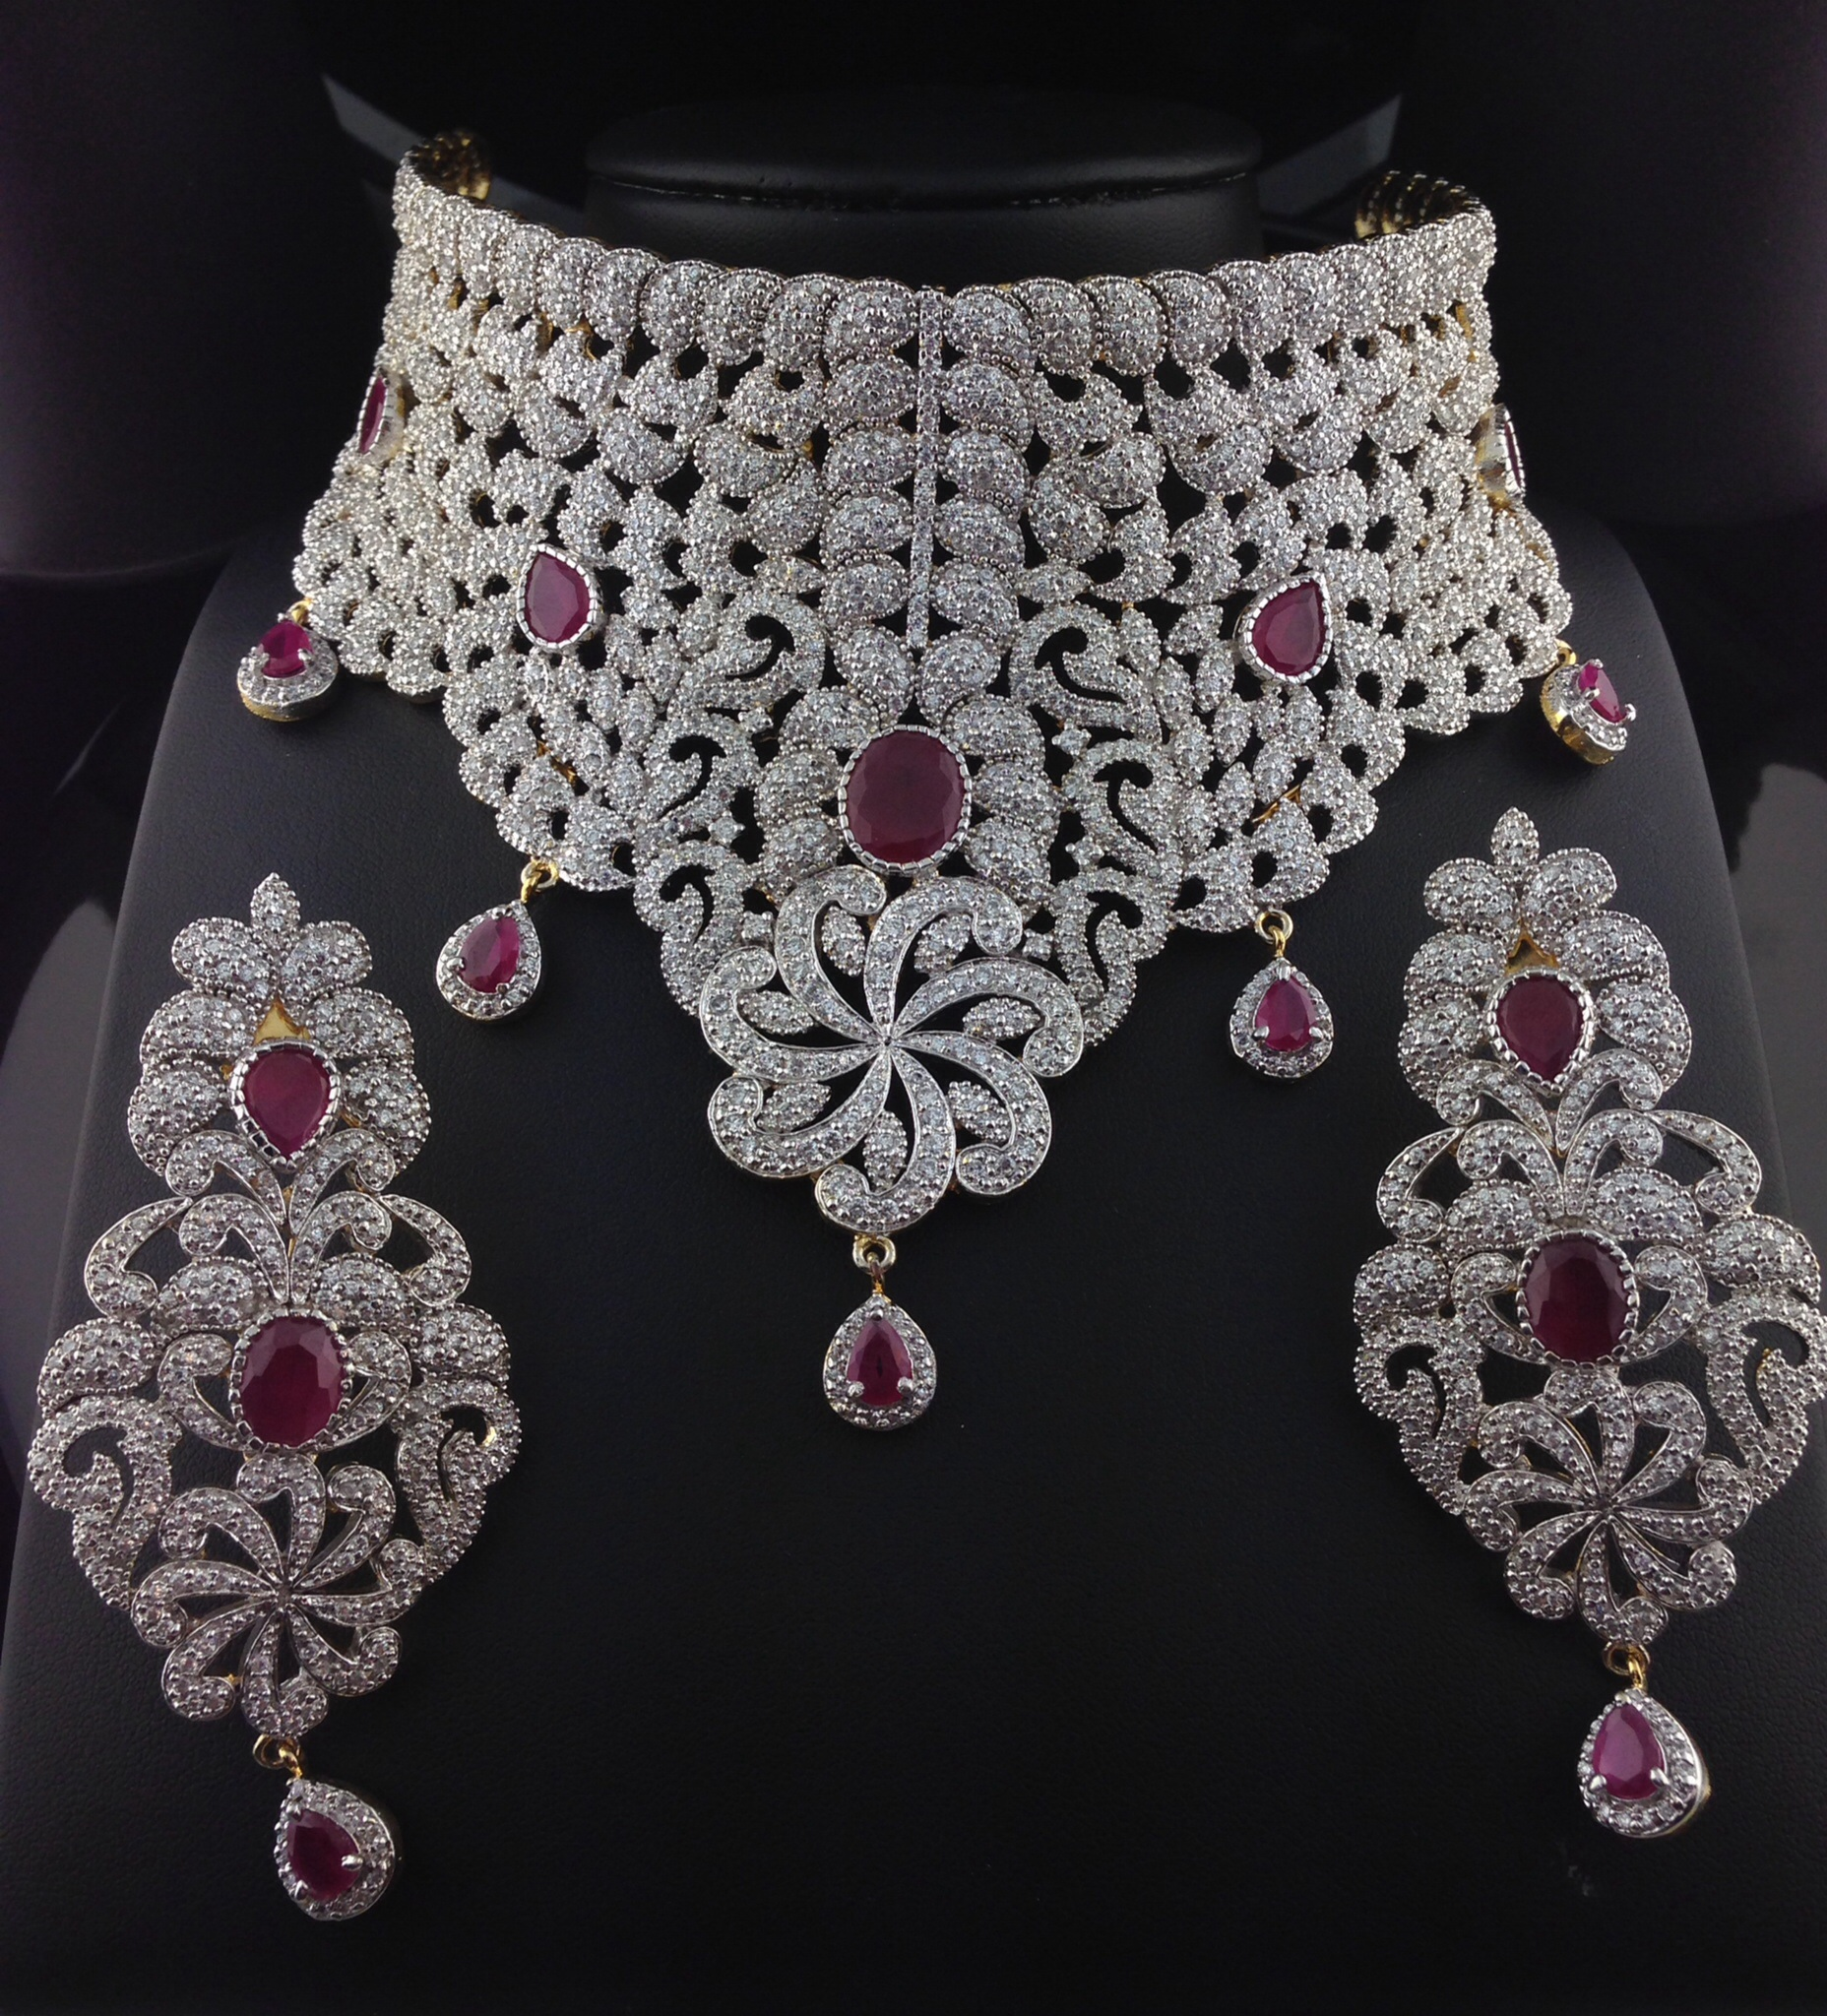 Stunning American Diamond Bridal Set With Rubies Indian Kundan Islamic And Gold Jewelry In Atlanta And Online